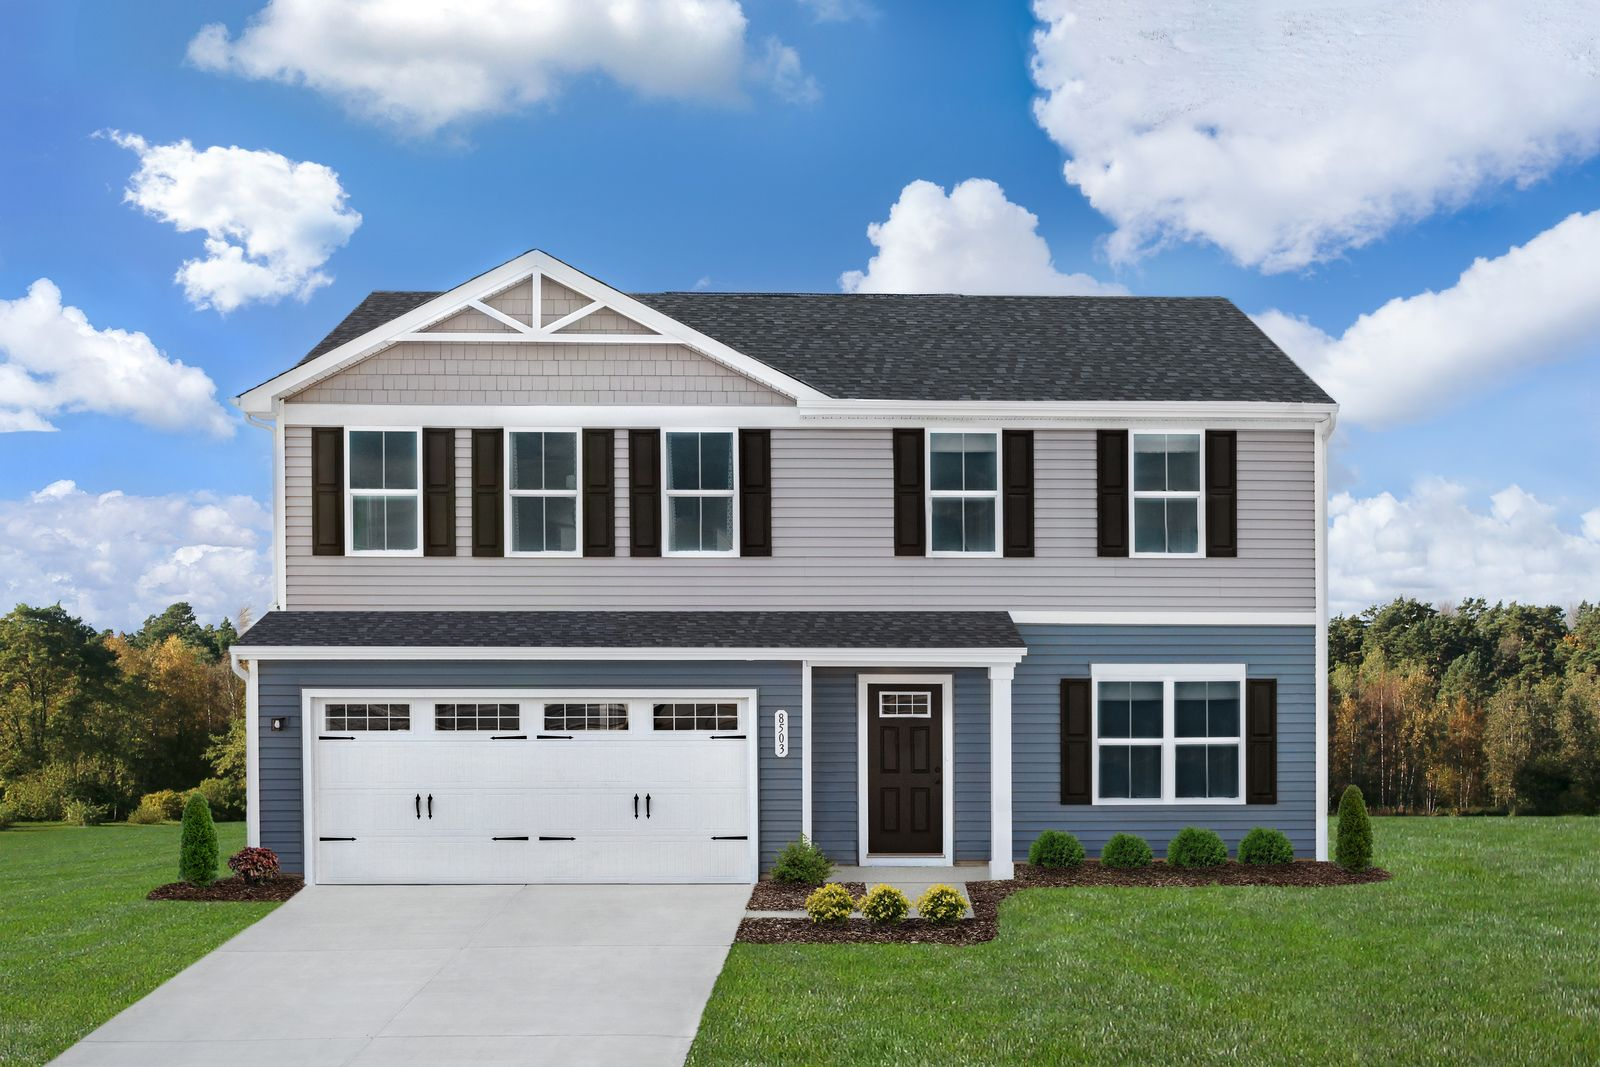 Welcome Home to Prairie Ridge, New Homes in Hampshire:With all appliances & landscaping included, just move in and start enjoying! Conveniently located near I-90 and Rt. 20.Click here to schedule yourvisit to Prairie Ridge!